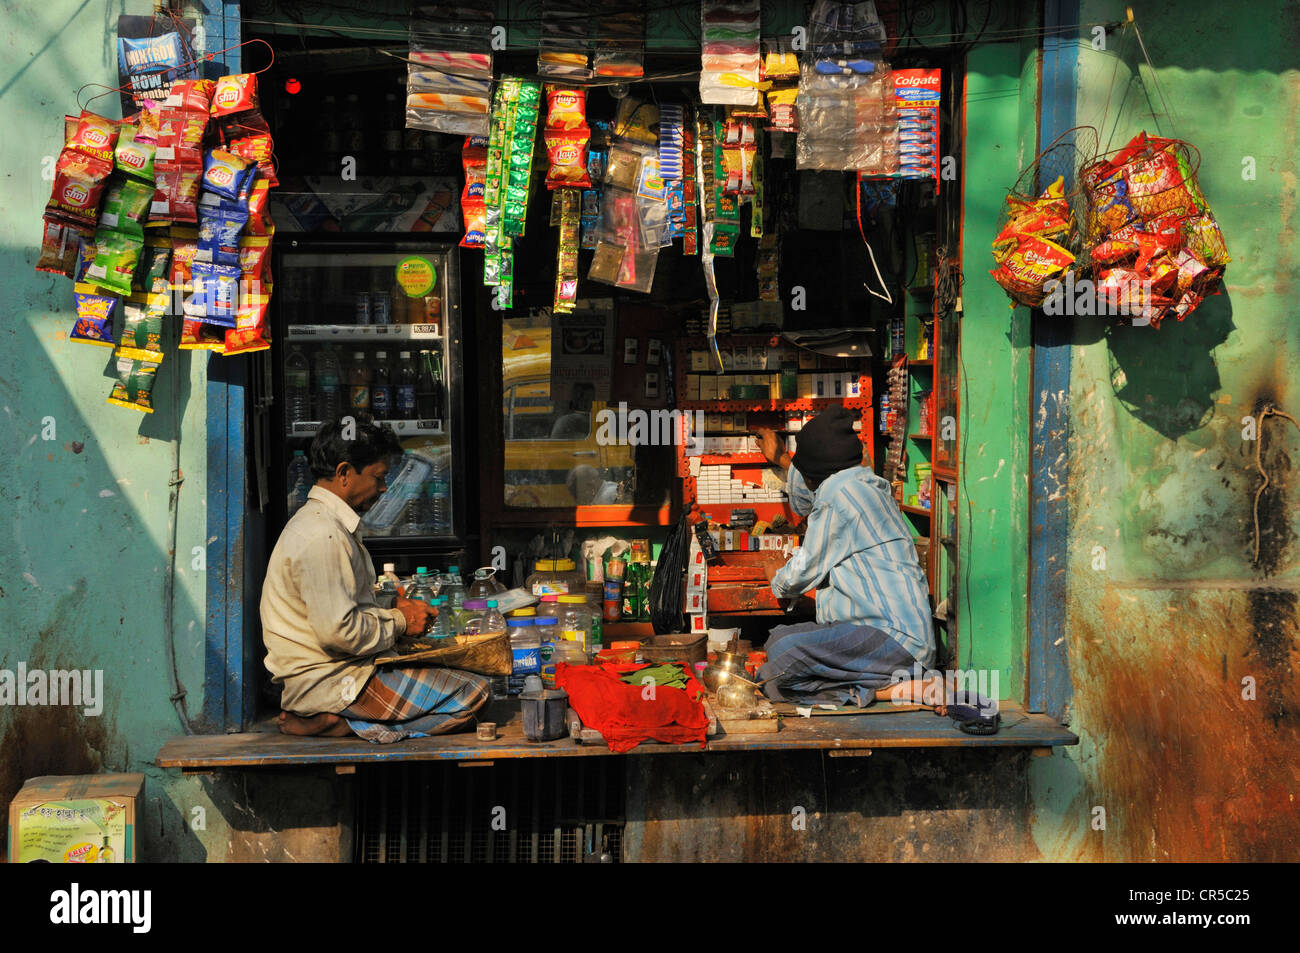 India, West Bengal State, Calcutta (Kolkata), betel nut and tobacco seller - Stock Image